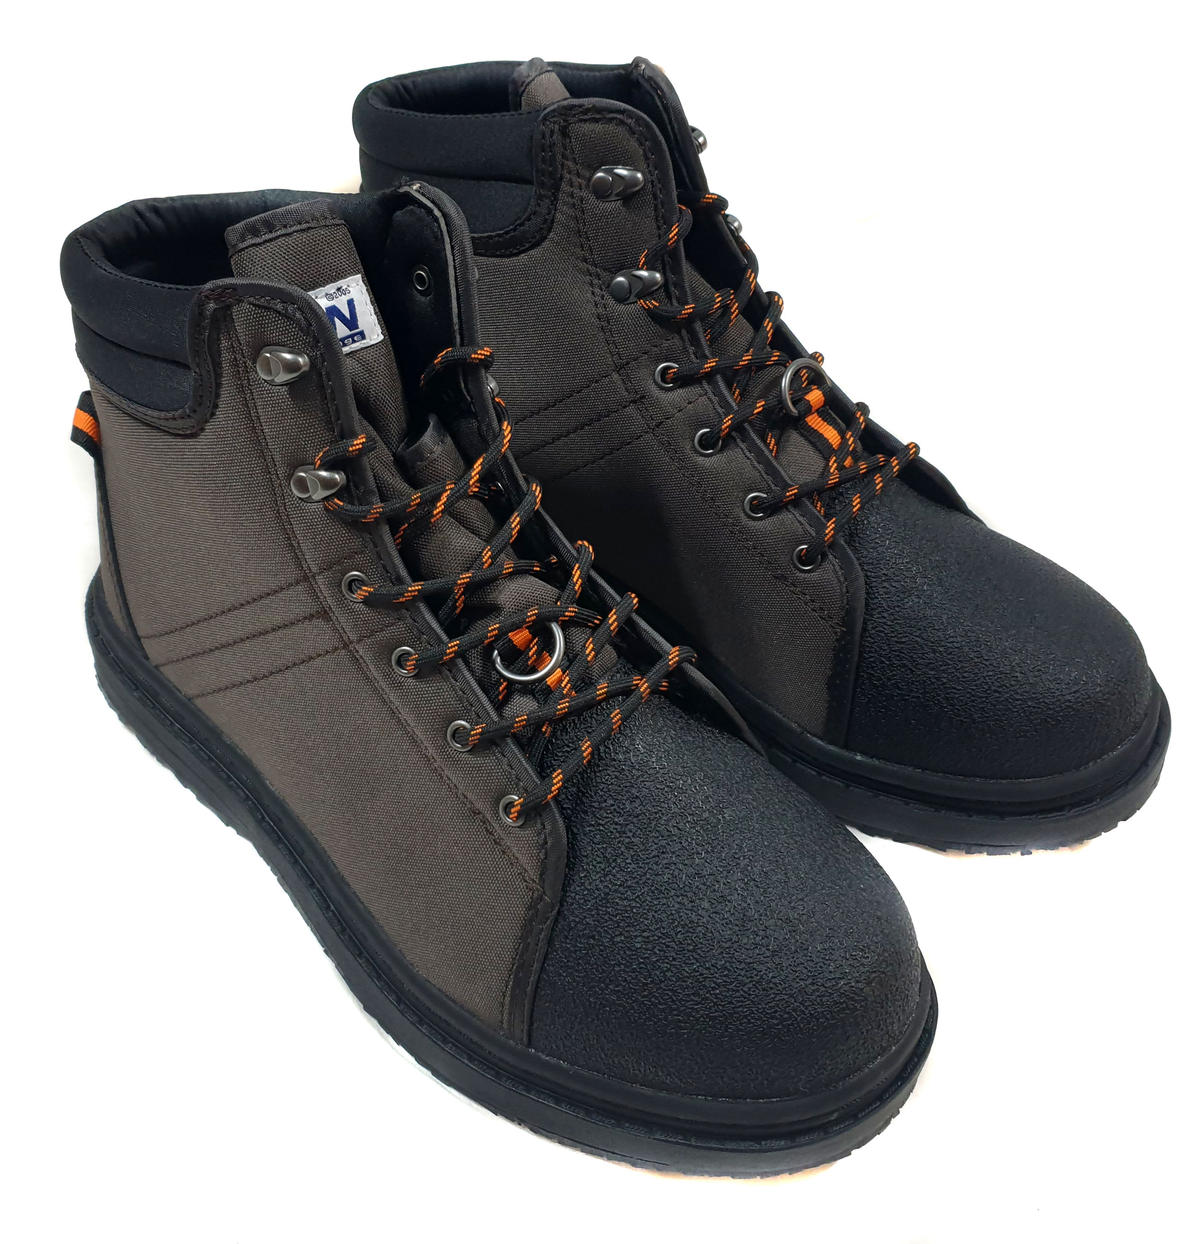 BISON MK2 WADING BOOTS IN FELT SOLE OR RUBBER SOLE WITH FREE WADING STUDS